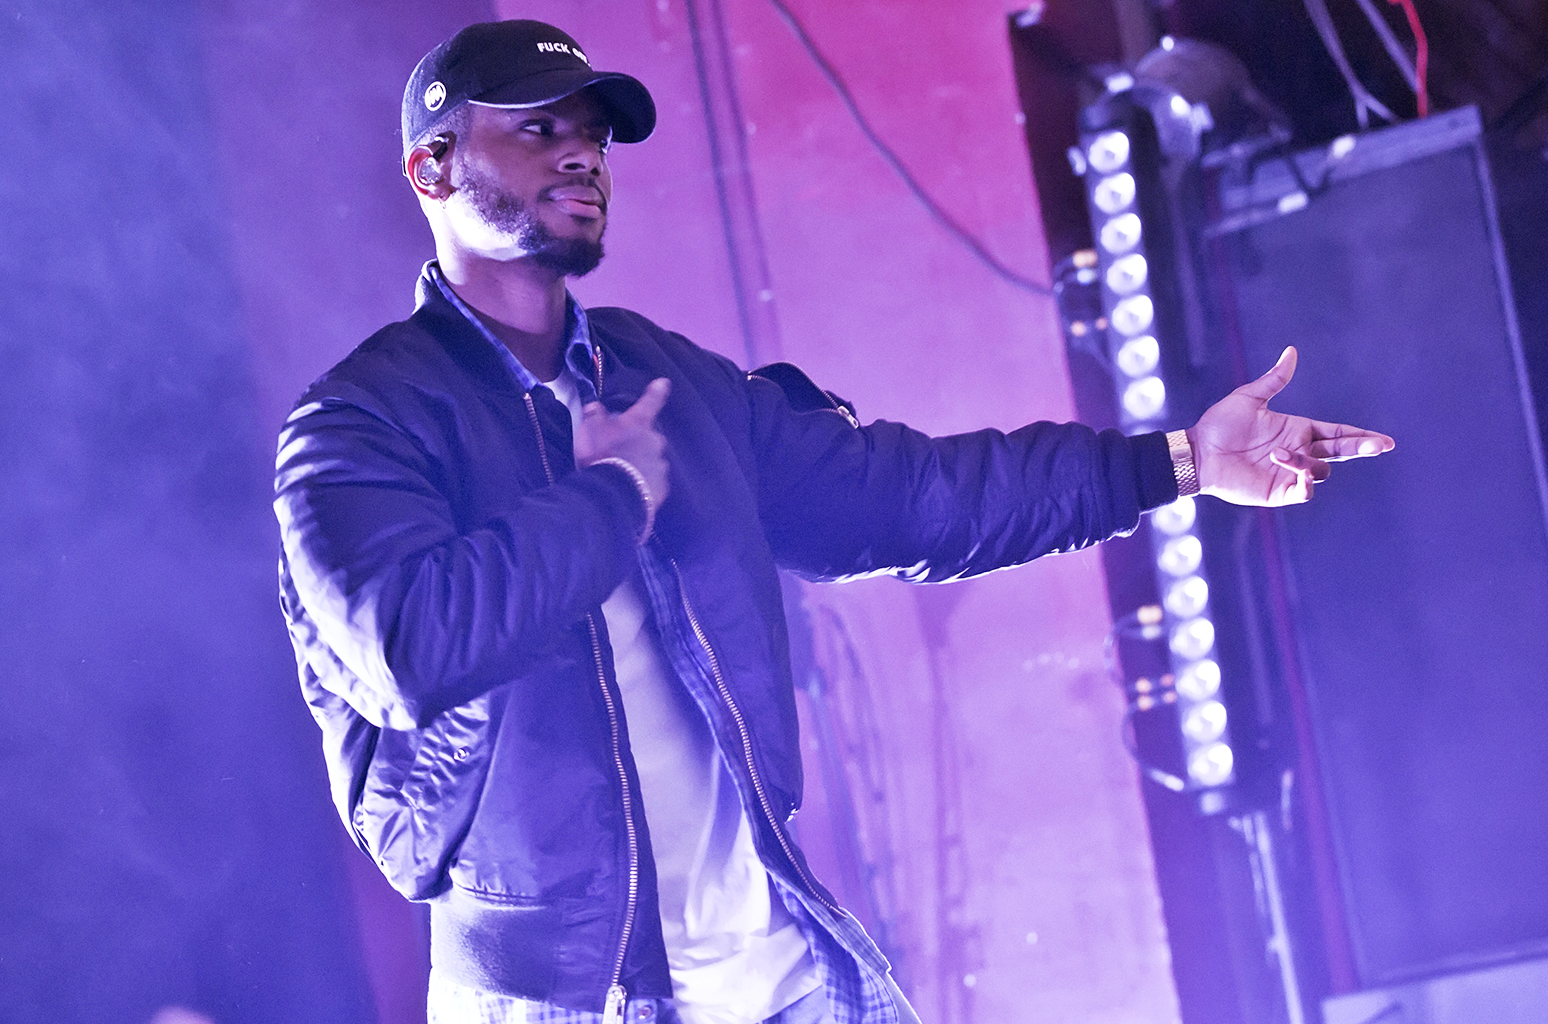 BERLIN, GERMANY - APRIL 07: American singer Bryson Tiller performs live during a concert at the Astra on April 7, 2016 in Berlin, Germany. (Photo by Frank Hoensch/Redferns via Getty Images)